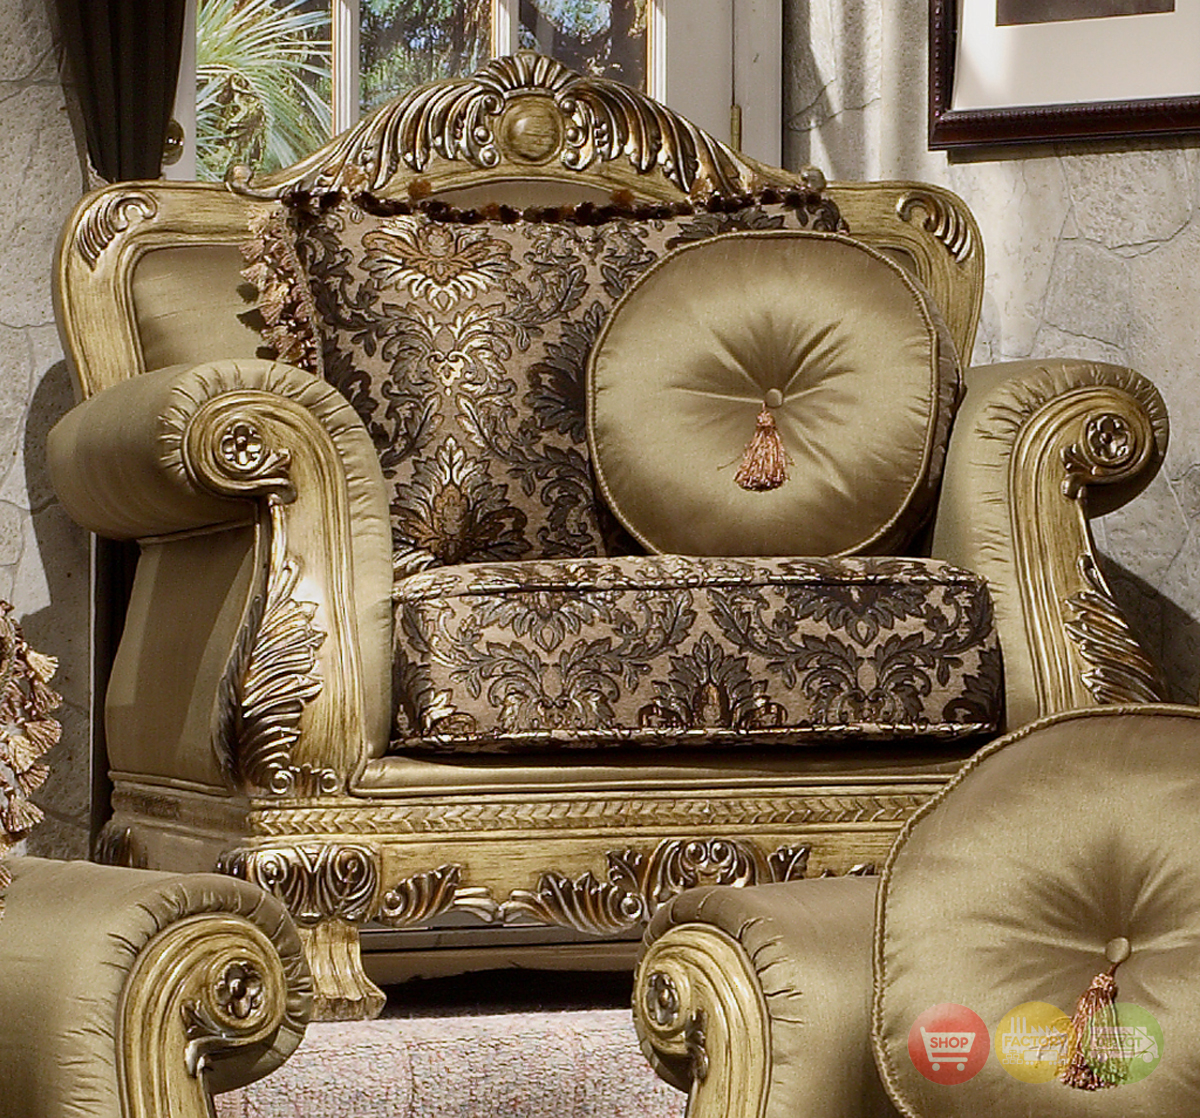 Antique living room chairs modern house for Luxury living room furniture collection